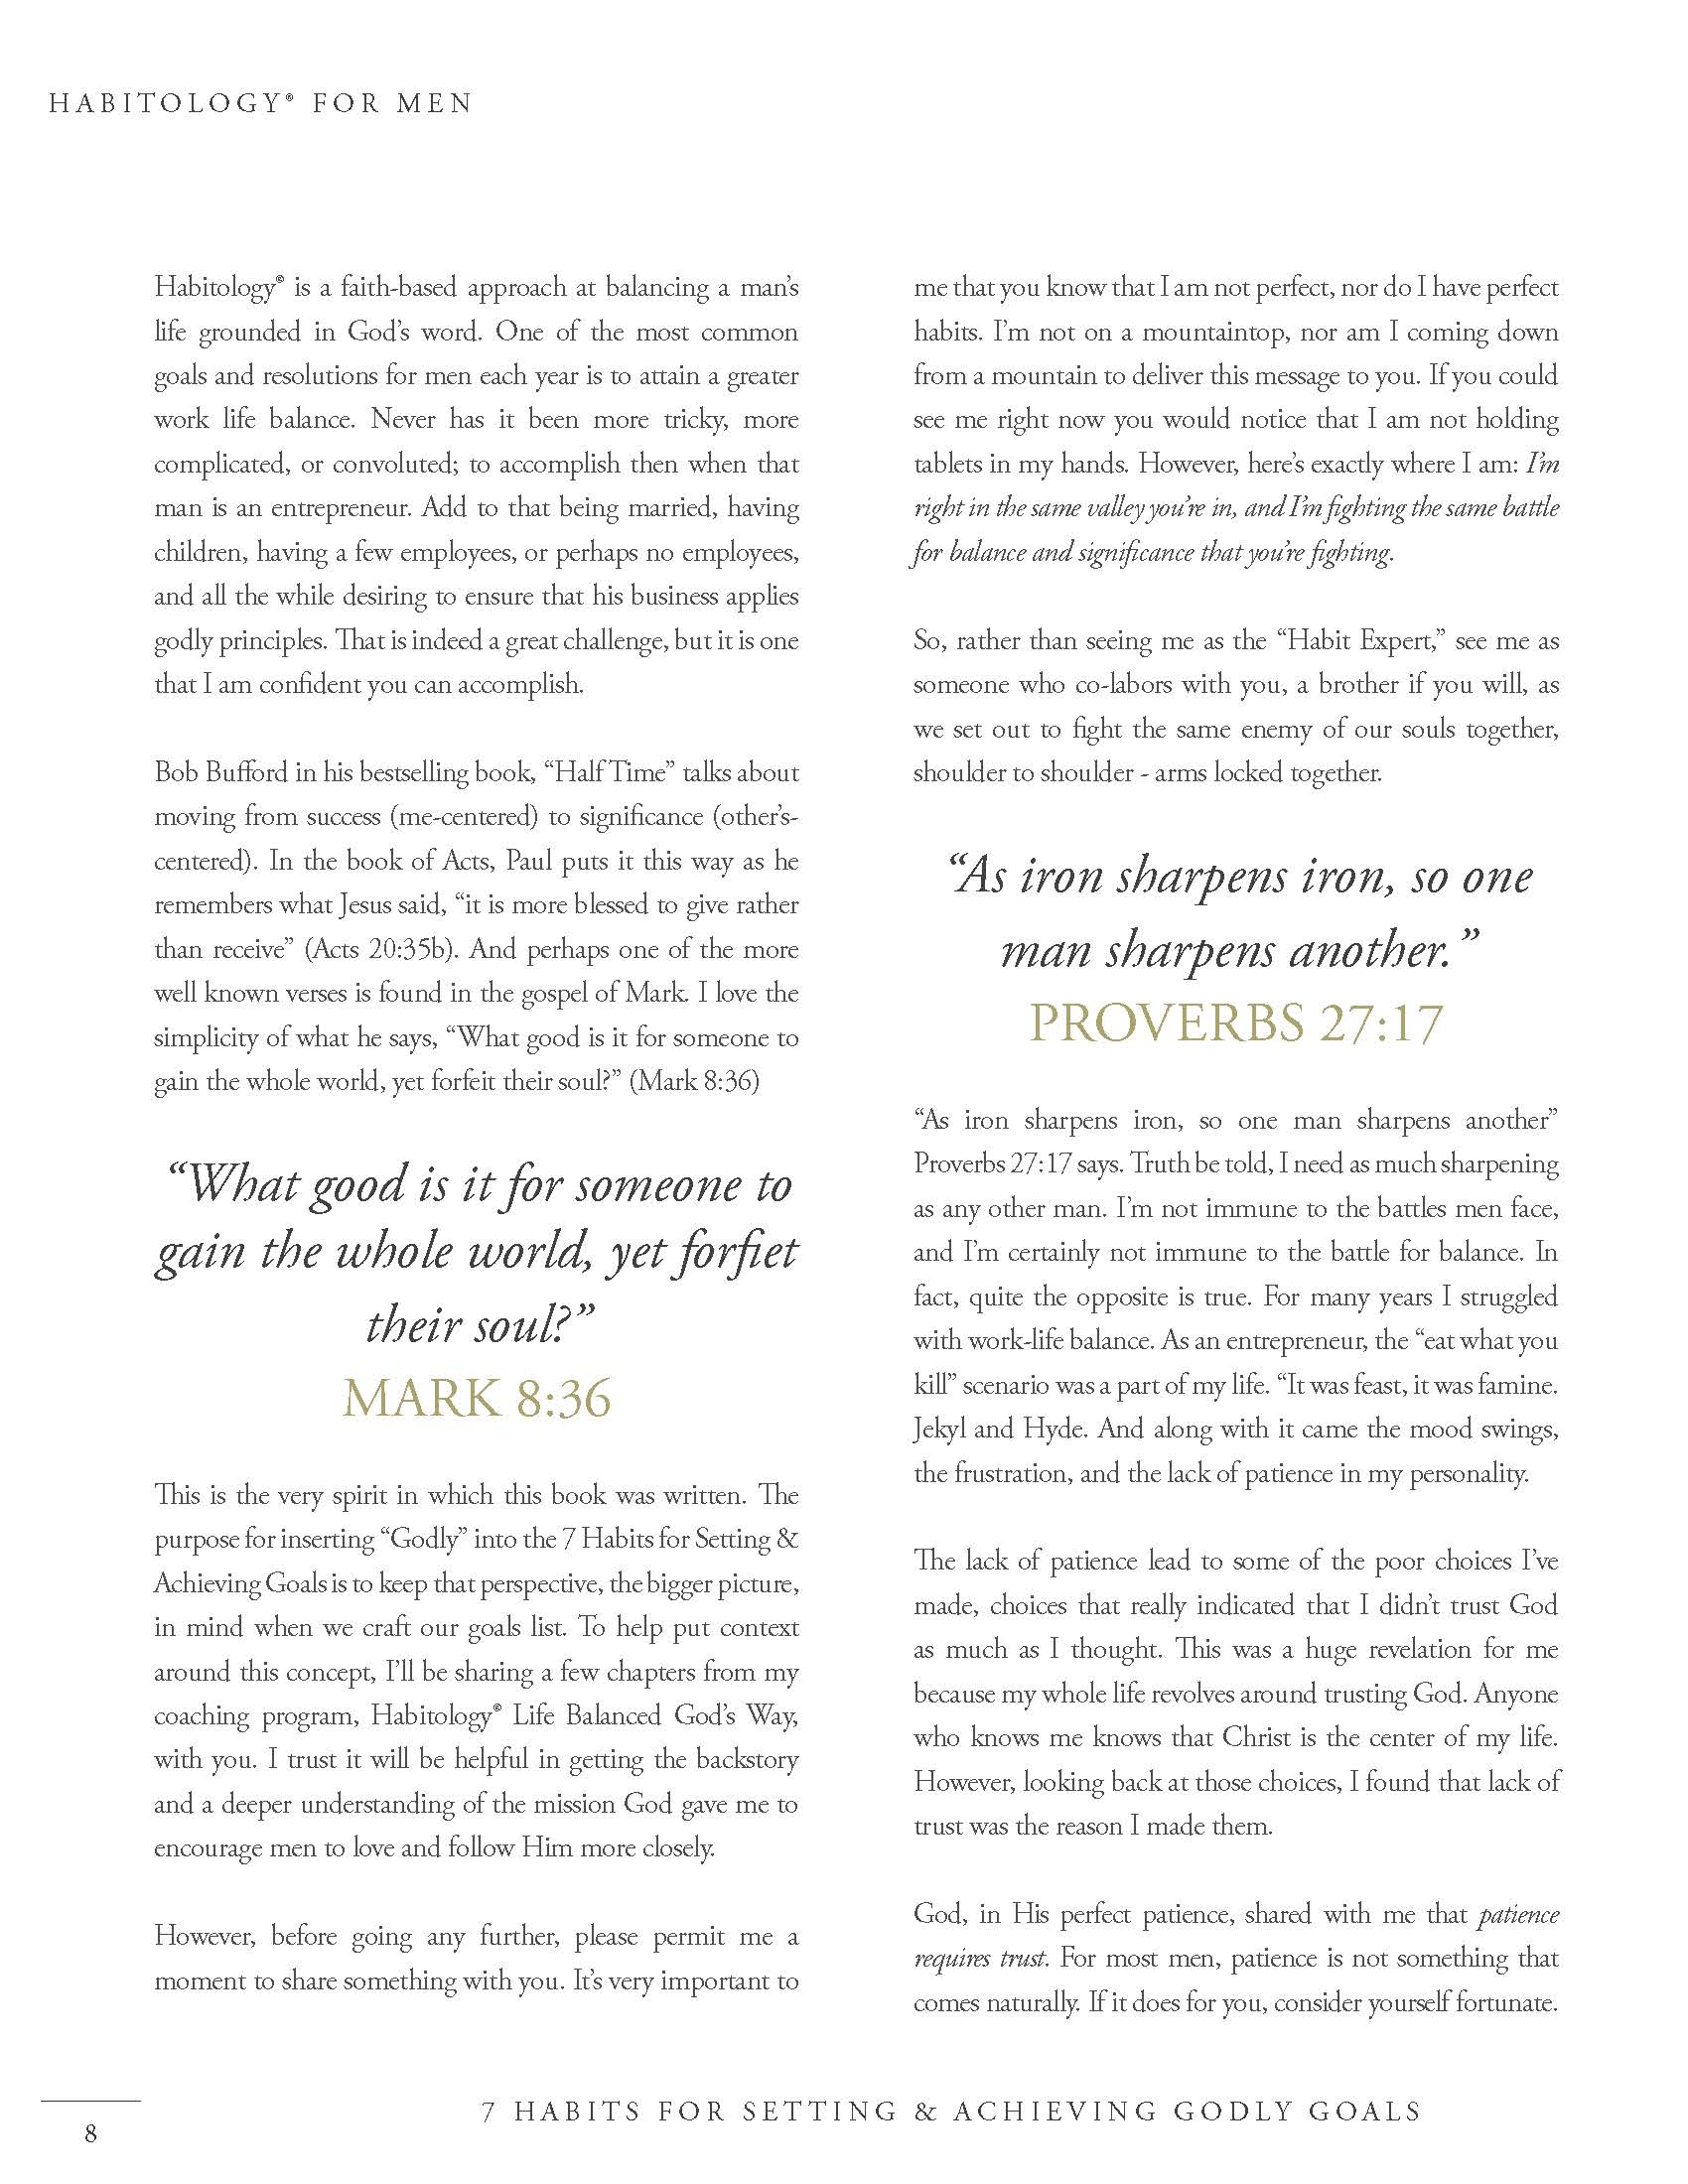 Habitology 7 Habits for Setting and Achieving Godly Goals, V7, 06-27-17 Page 08